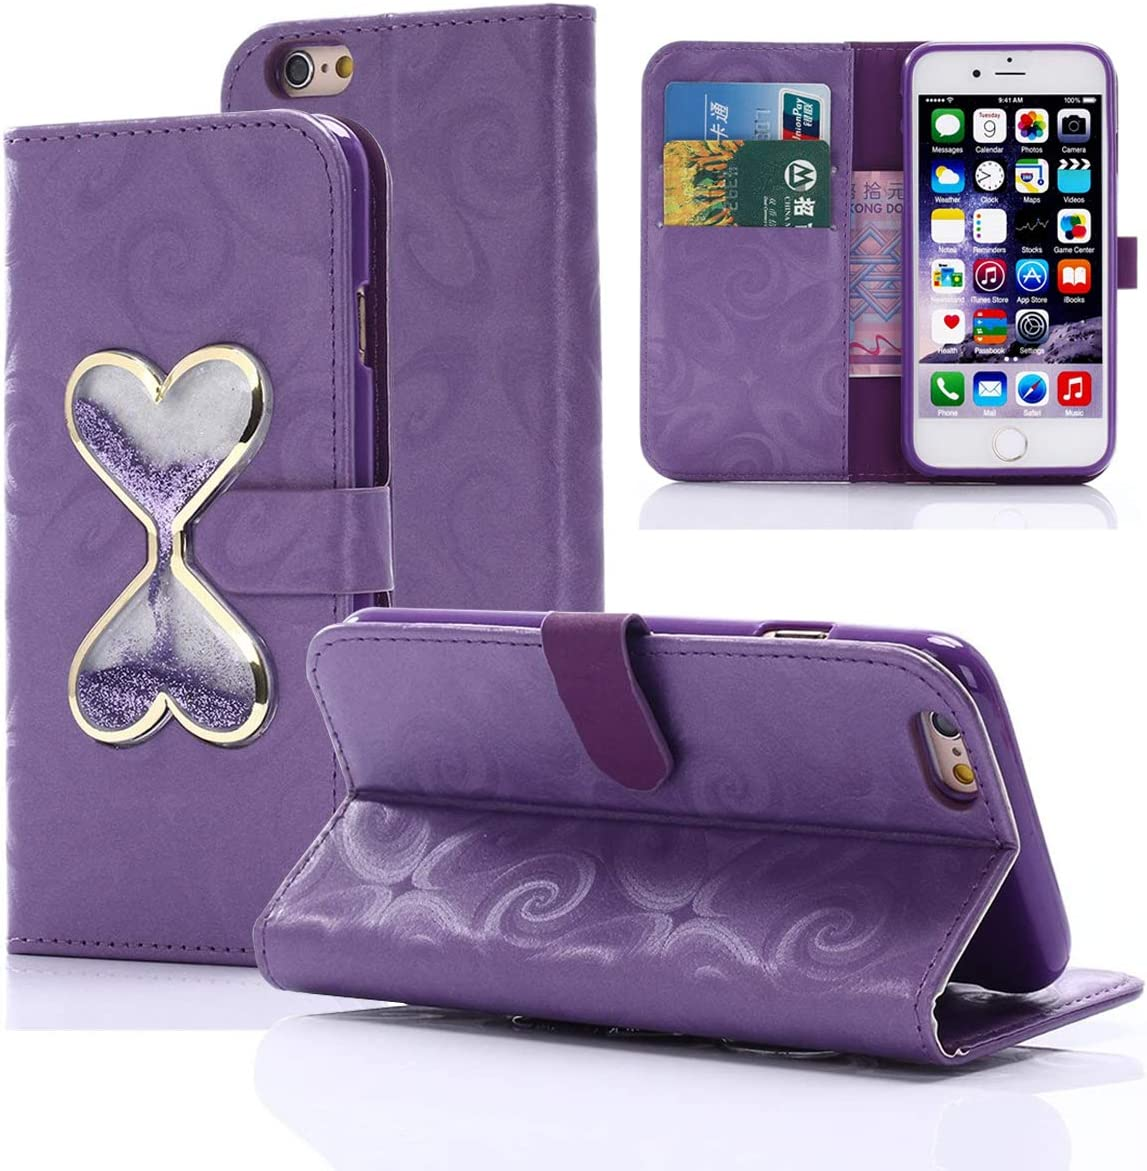 Gift_Source iPhone 5S Case,iPhone SE Case, Wallet Flip Case Bling Glitter Floating Linquid Hourglasses Love Heart Design PU Leather Kickstand Card Slots Cover for iPhone SE/5/5s [Purple]